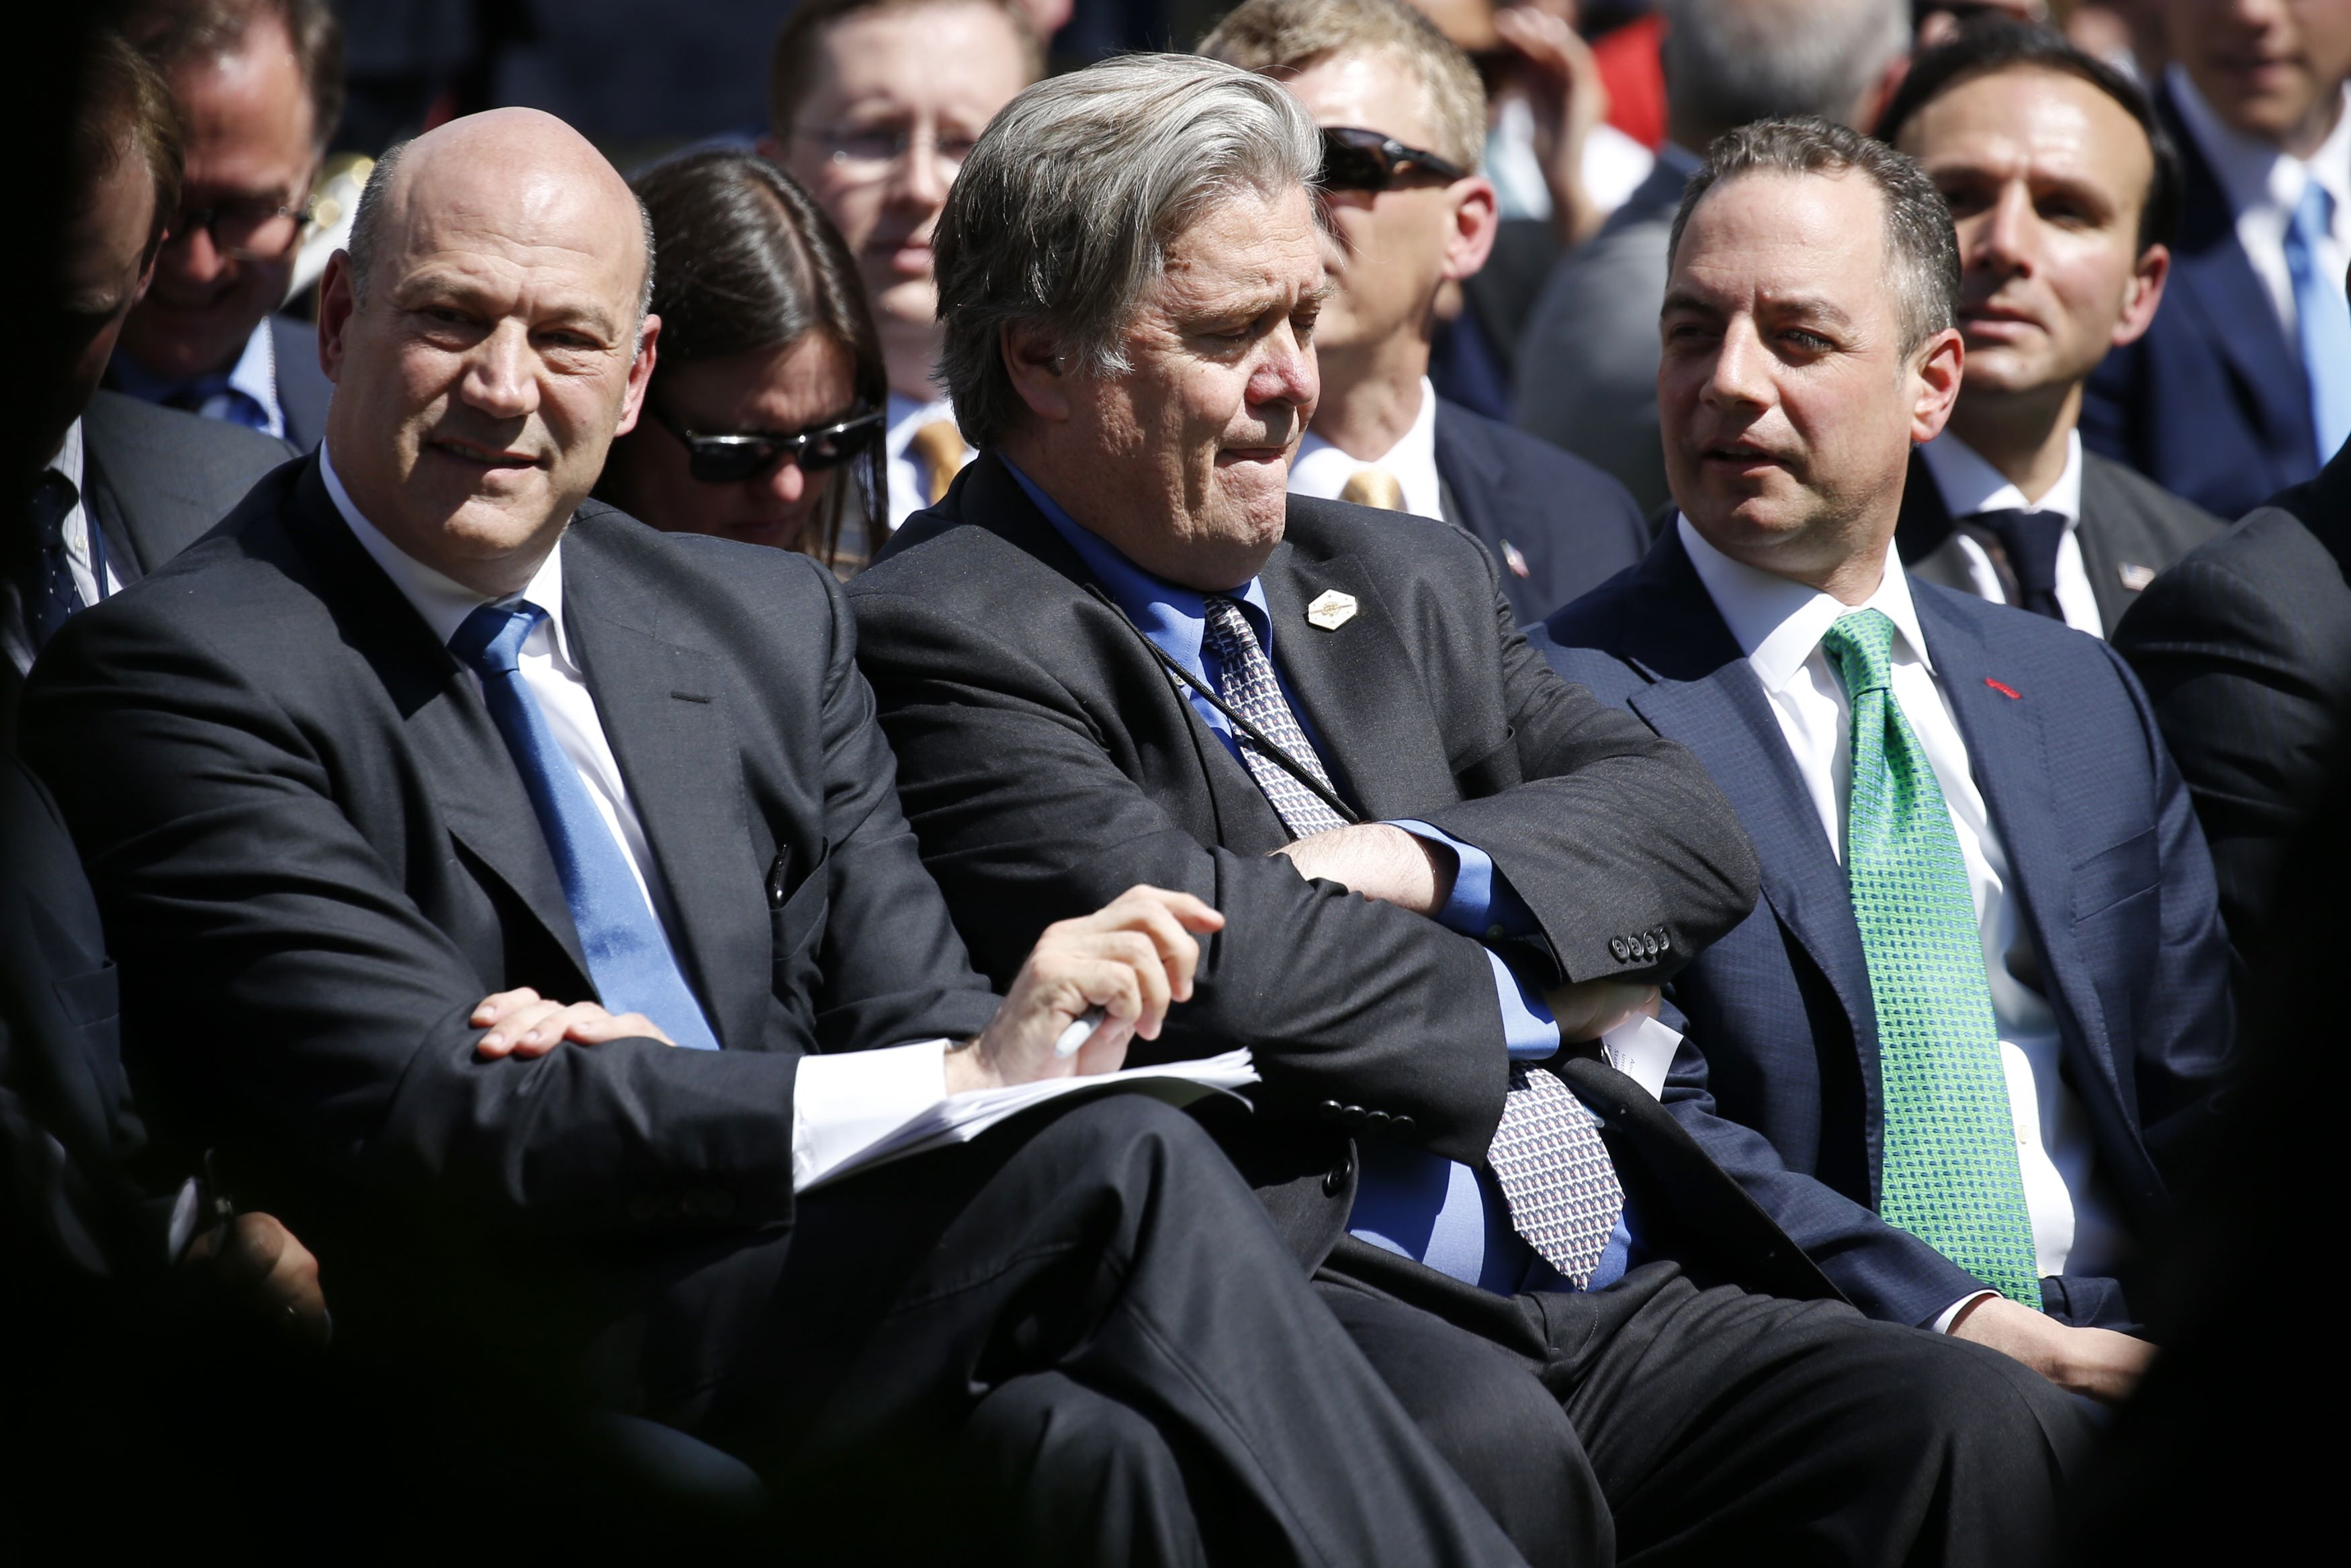 Director of the White House National Economic Council Gary Cohn, White House Chief Strategist Stephen Bannon and Chief of Staff Reince Priebus (L-R) wait in the Rose Garden prior to President Donald Trump announcing his decision on whether the U.S. will remain in the Paris Climate Agreement, at the White House in Washington on June 1, 2017. (REUTERS/Joshua Roberts)